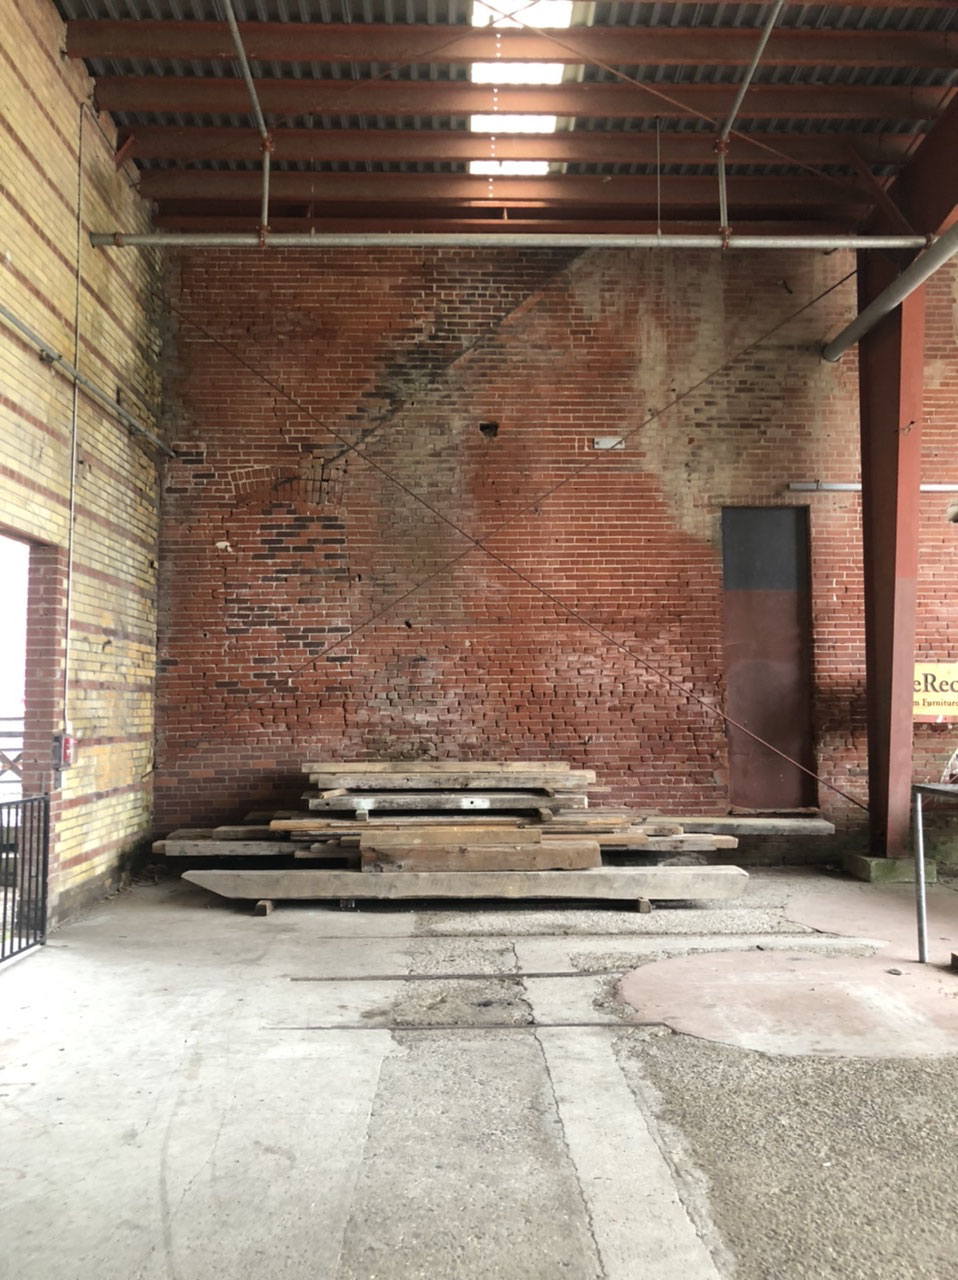 These three photos were taken by Sae Kimura at the Brick Works in Toronto